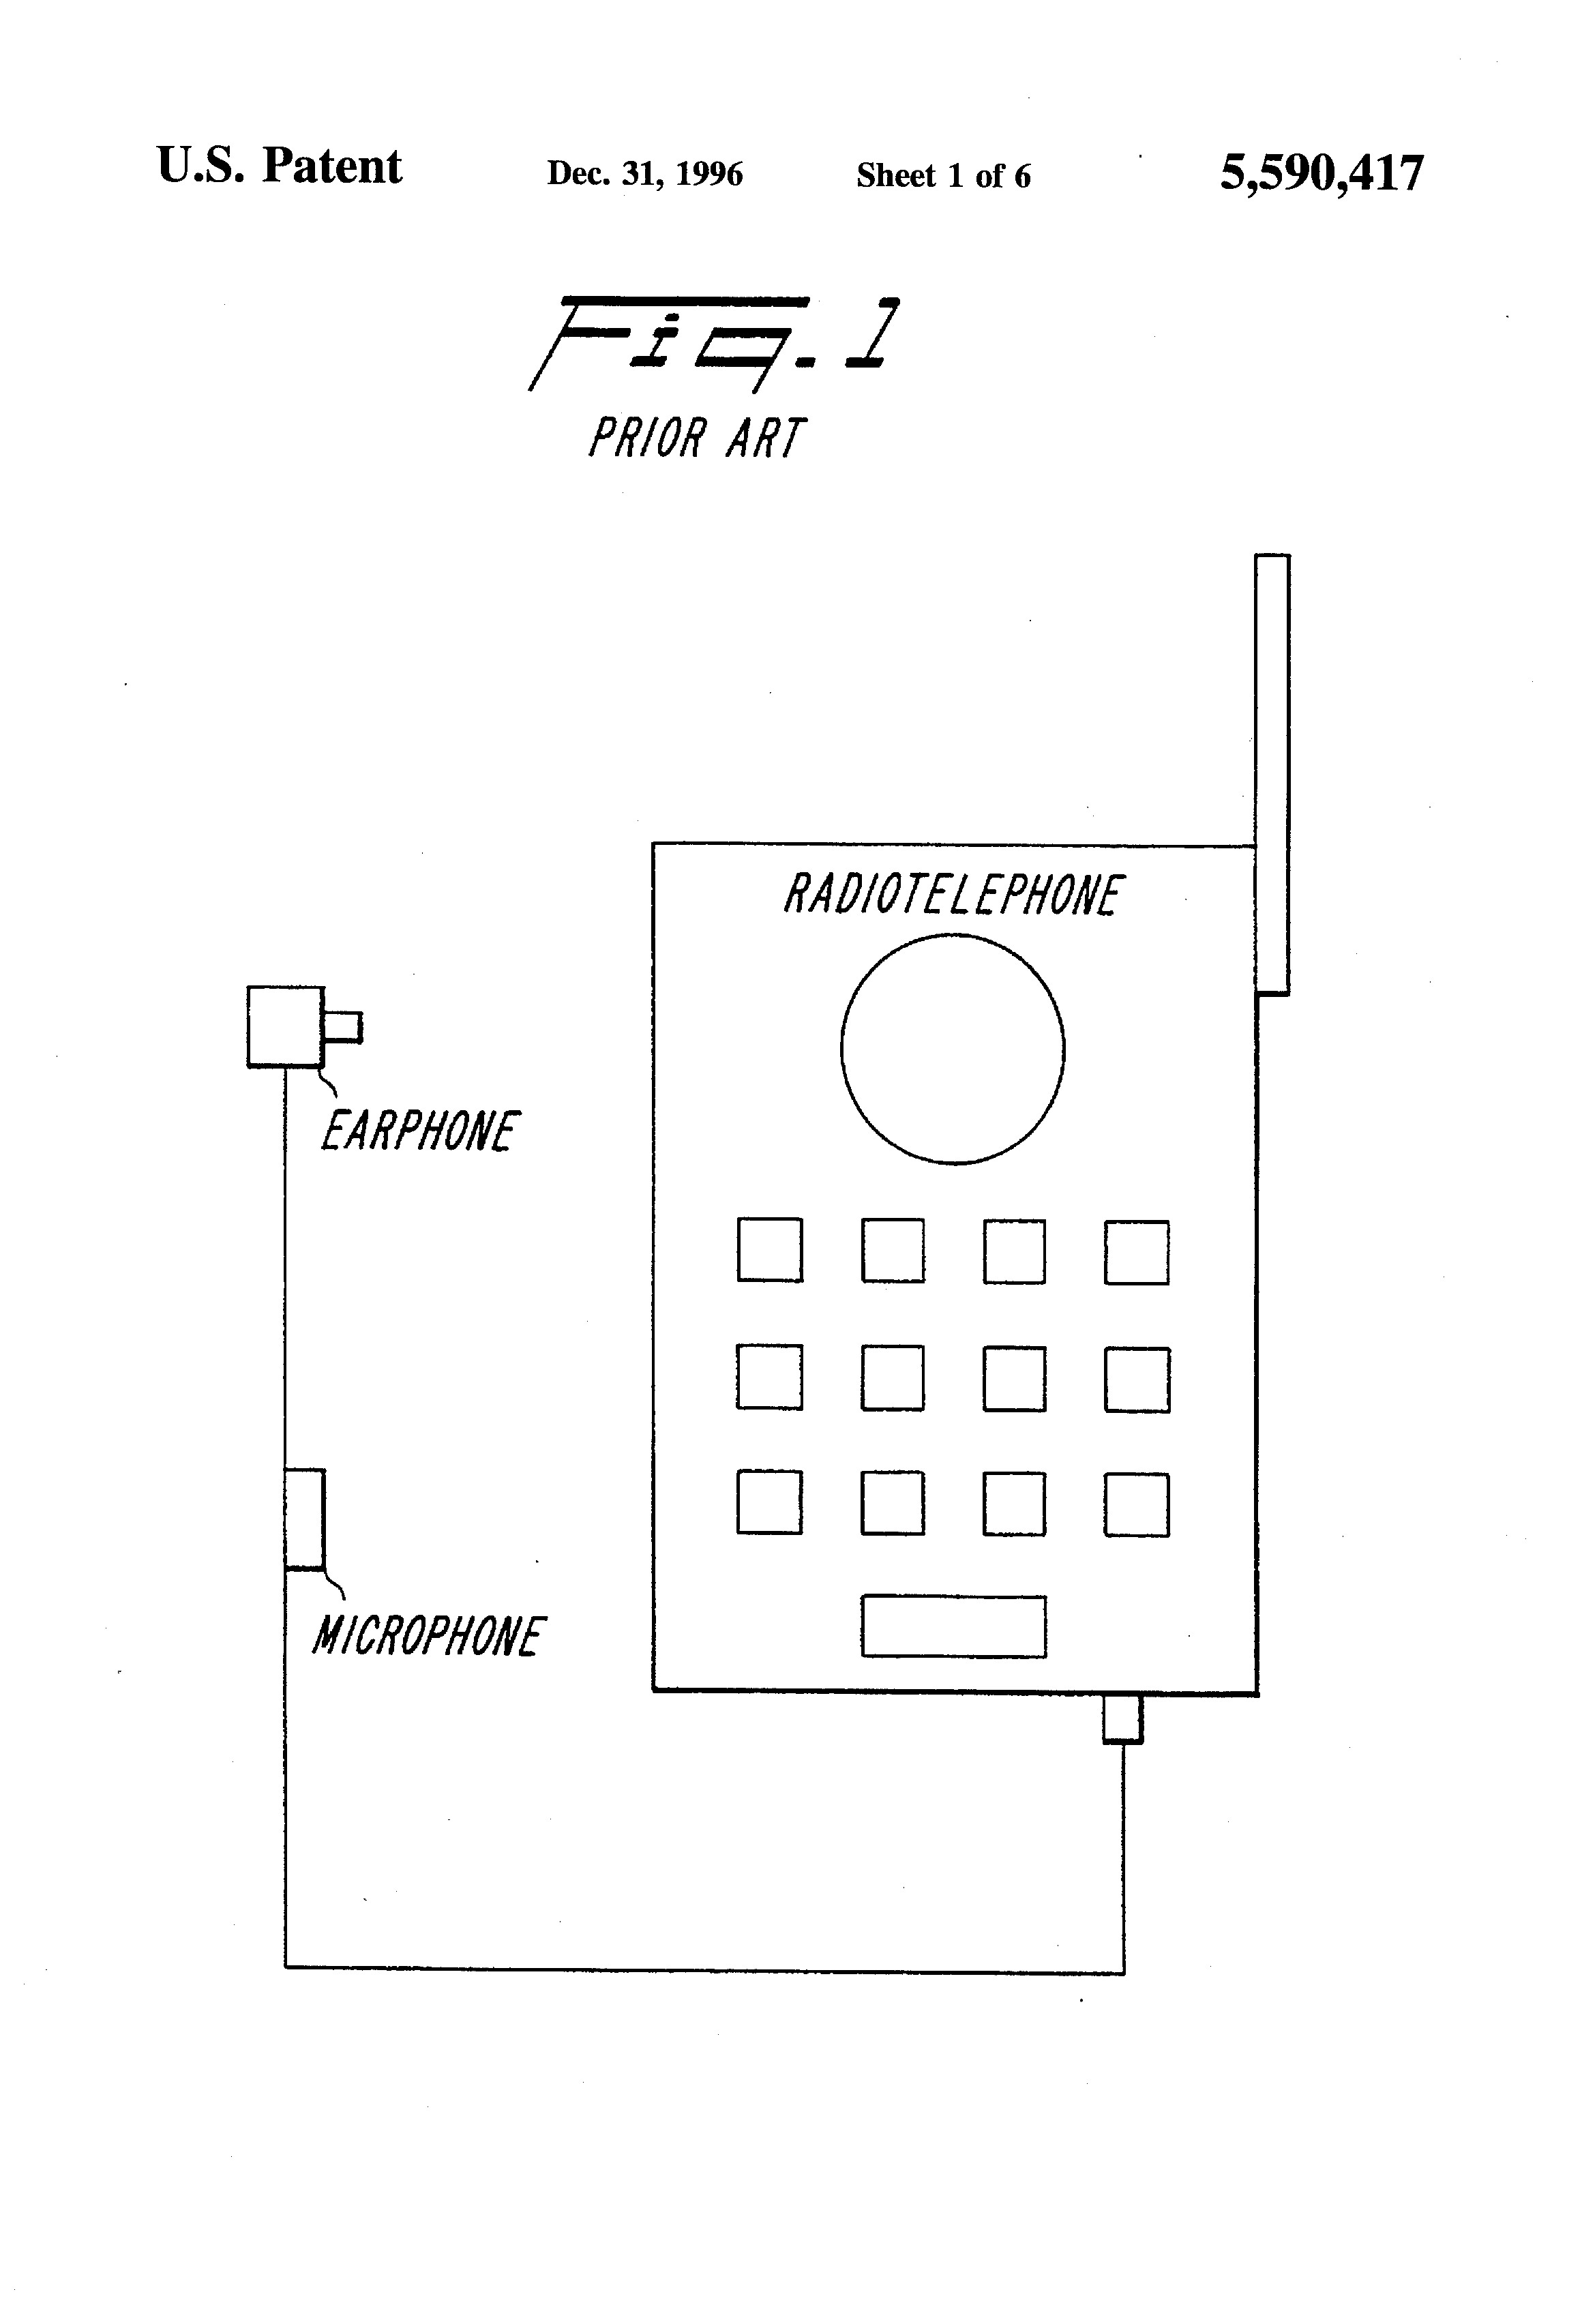 Handfree Switch Device For Wireless Intercom Google Patents Wire 10pcsfr4coppercladcircuitboardsinglepcb70x100x15mmstable Patent Us5590417 Radiotelephone Apparatus Including A Rh Com Pg